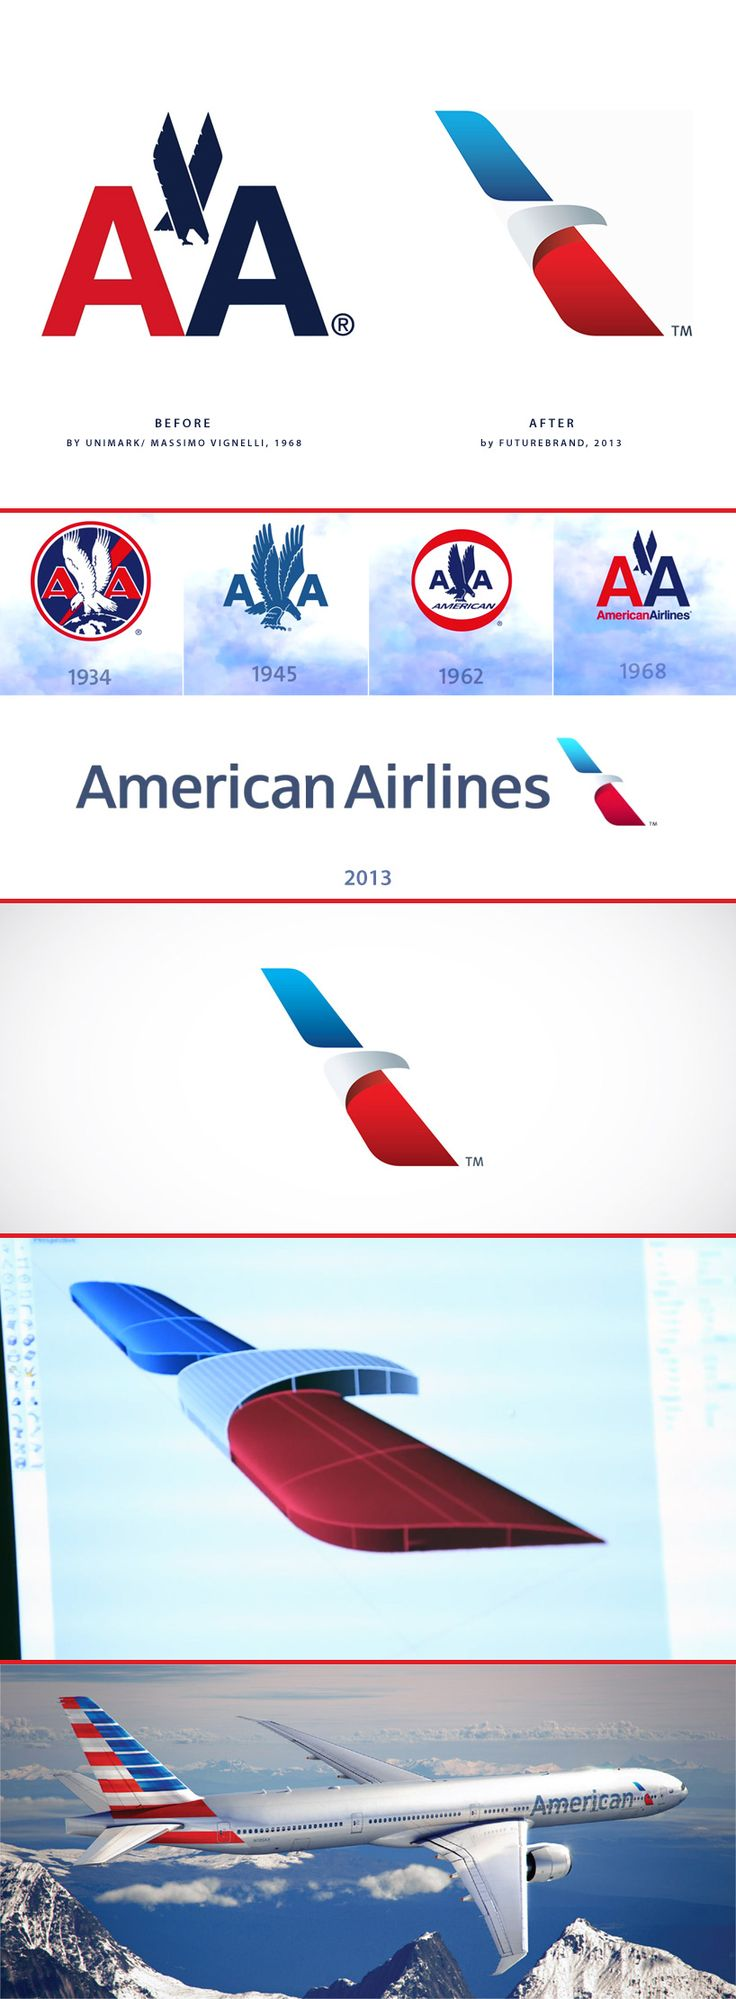 American Airlines by Futurebrand